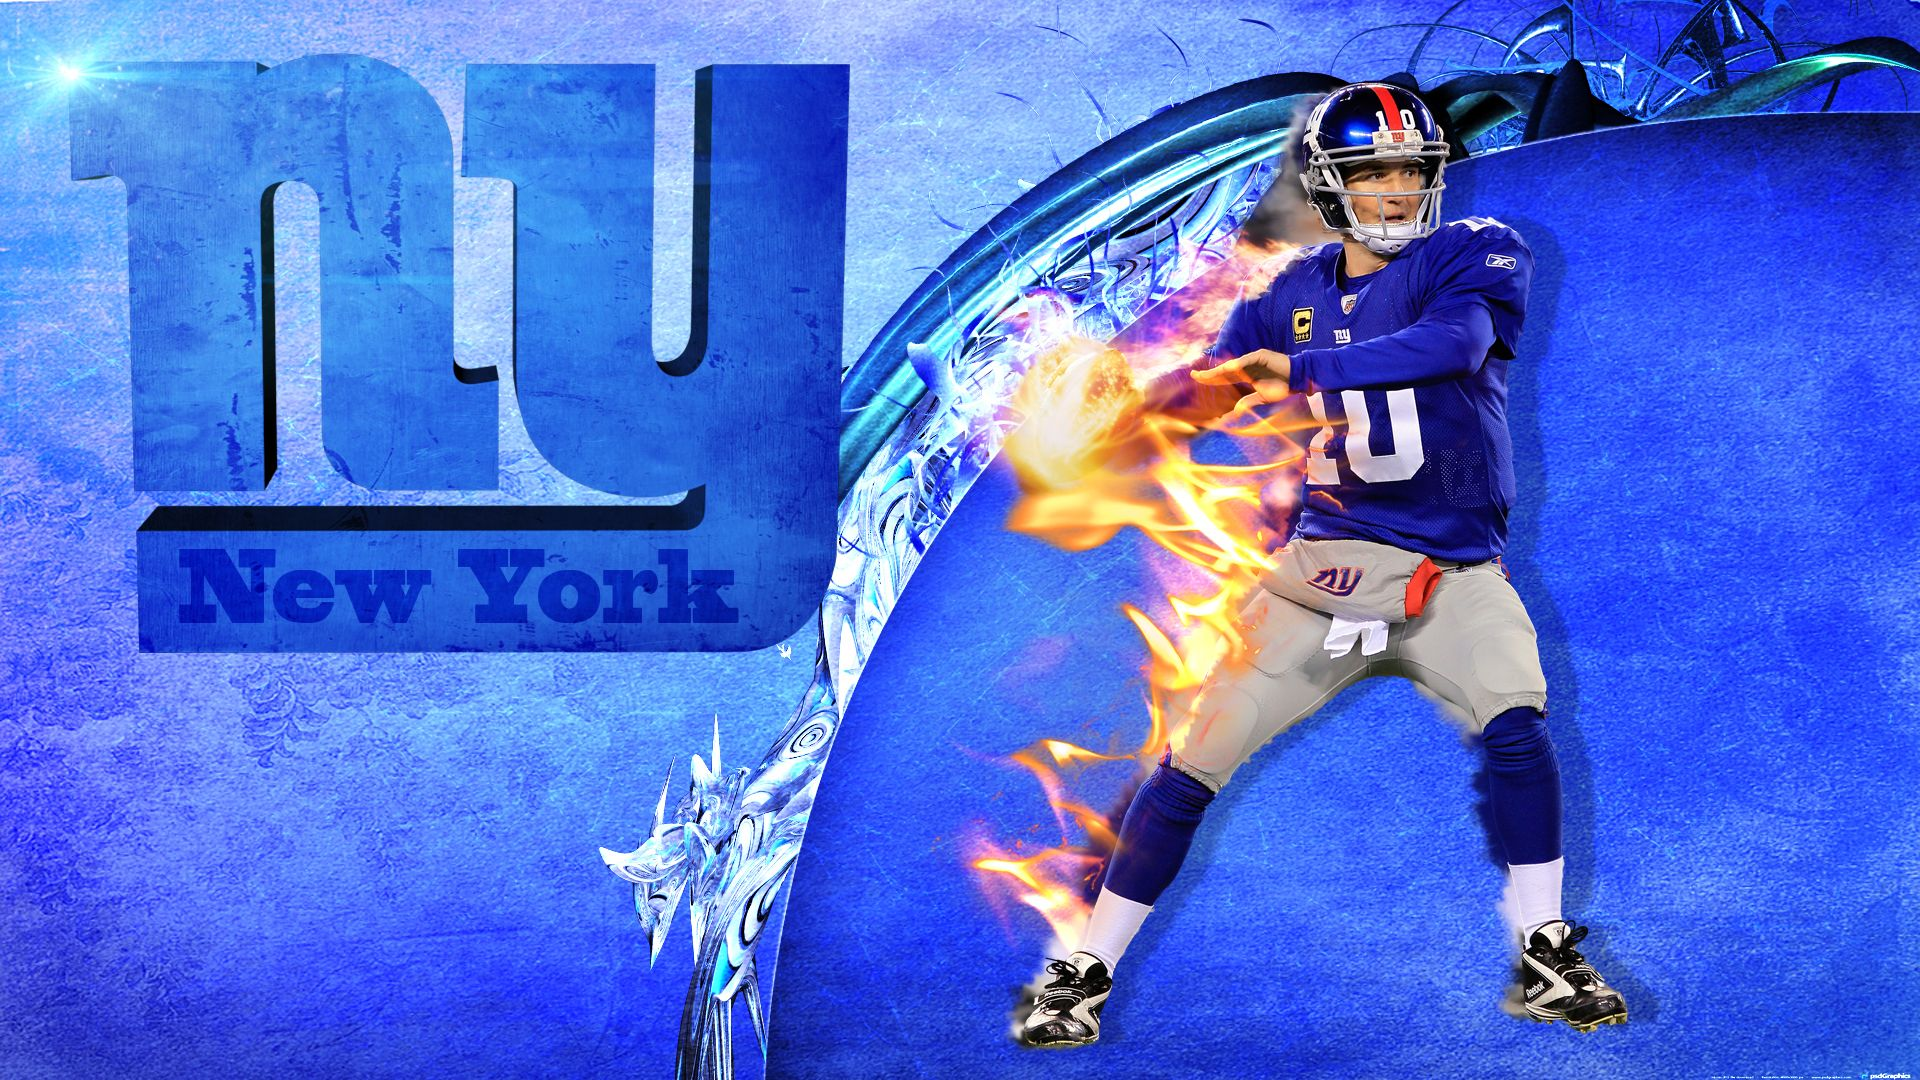 New York Giants New York Giants Wallpaper Collection Sports